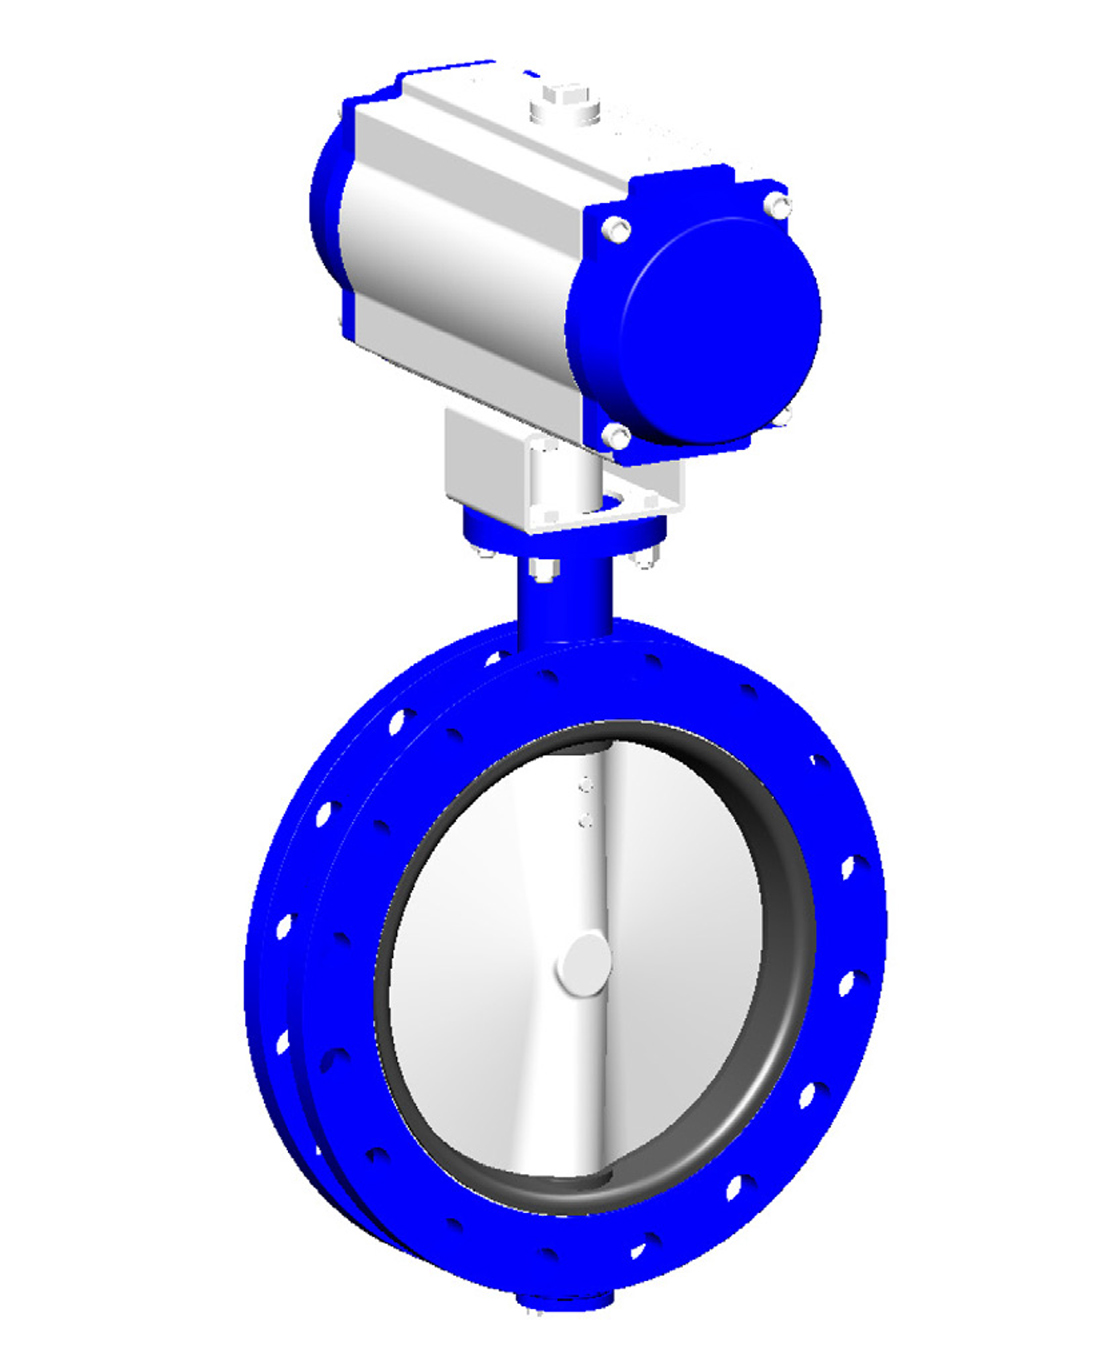 Double flanges type butterfly valve PN16 – ductile iron body – ductile iron disc – double acting pneumatic operator